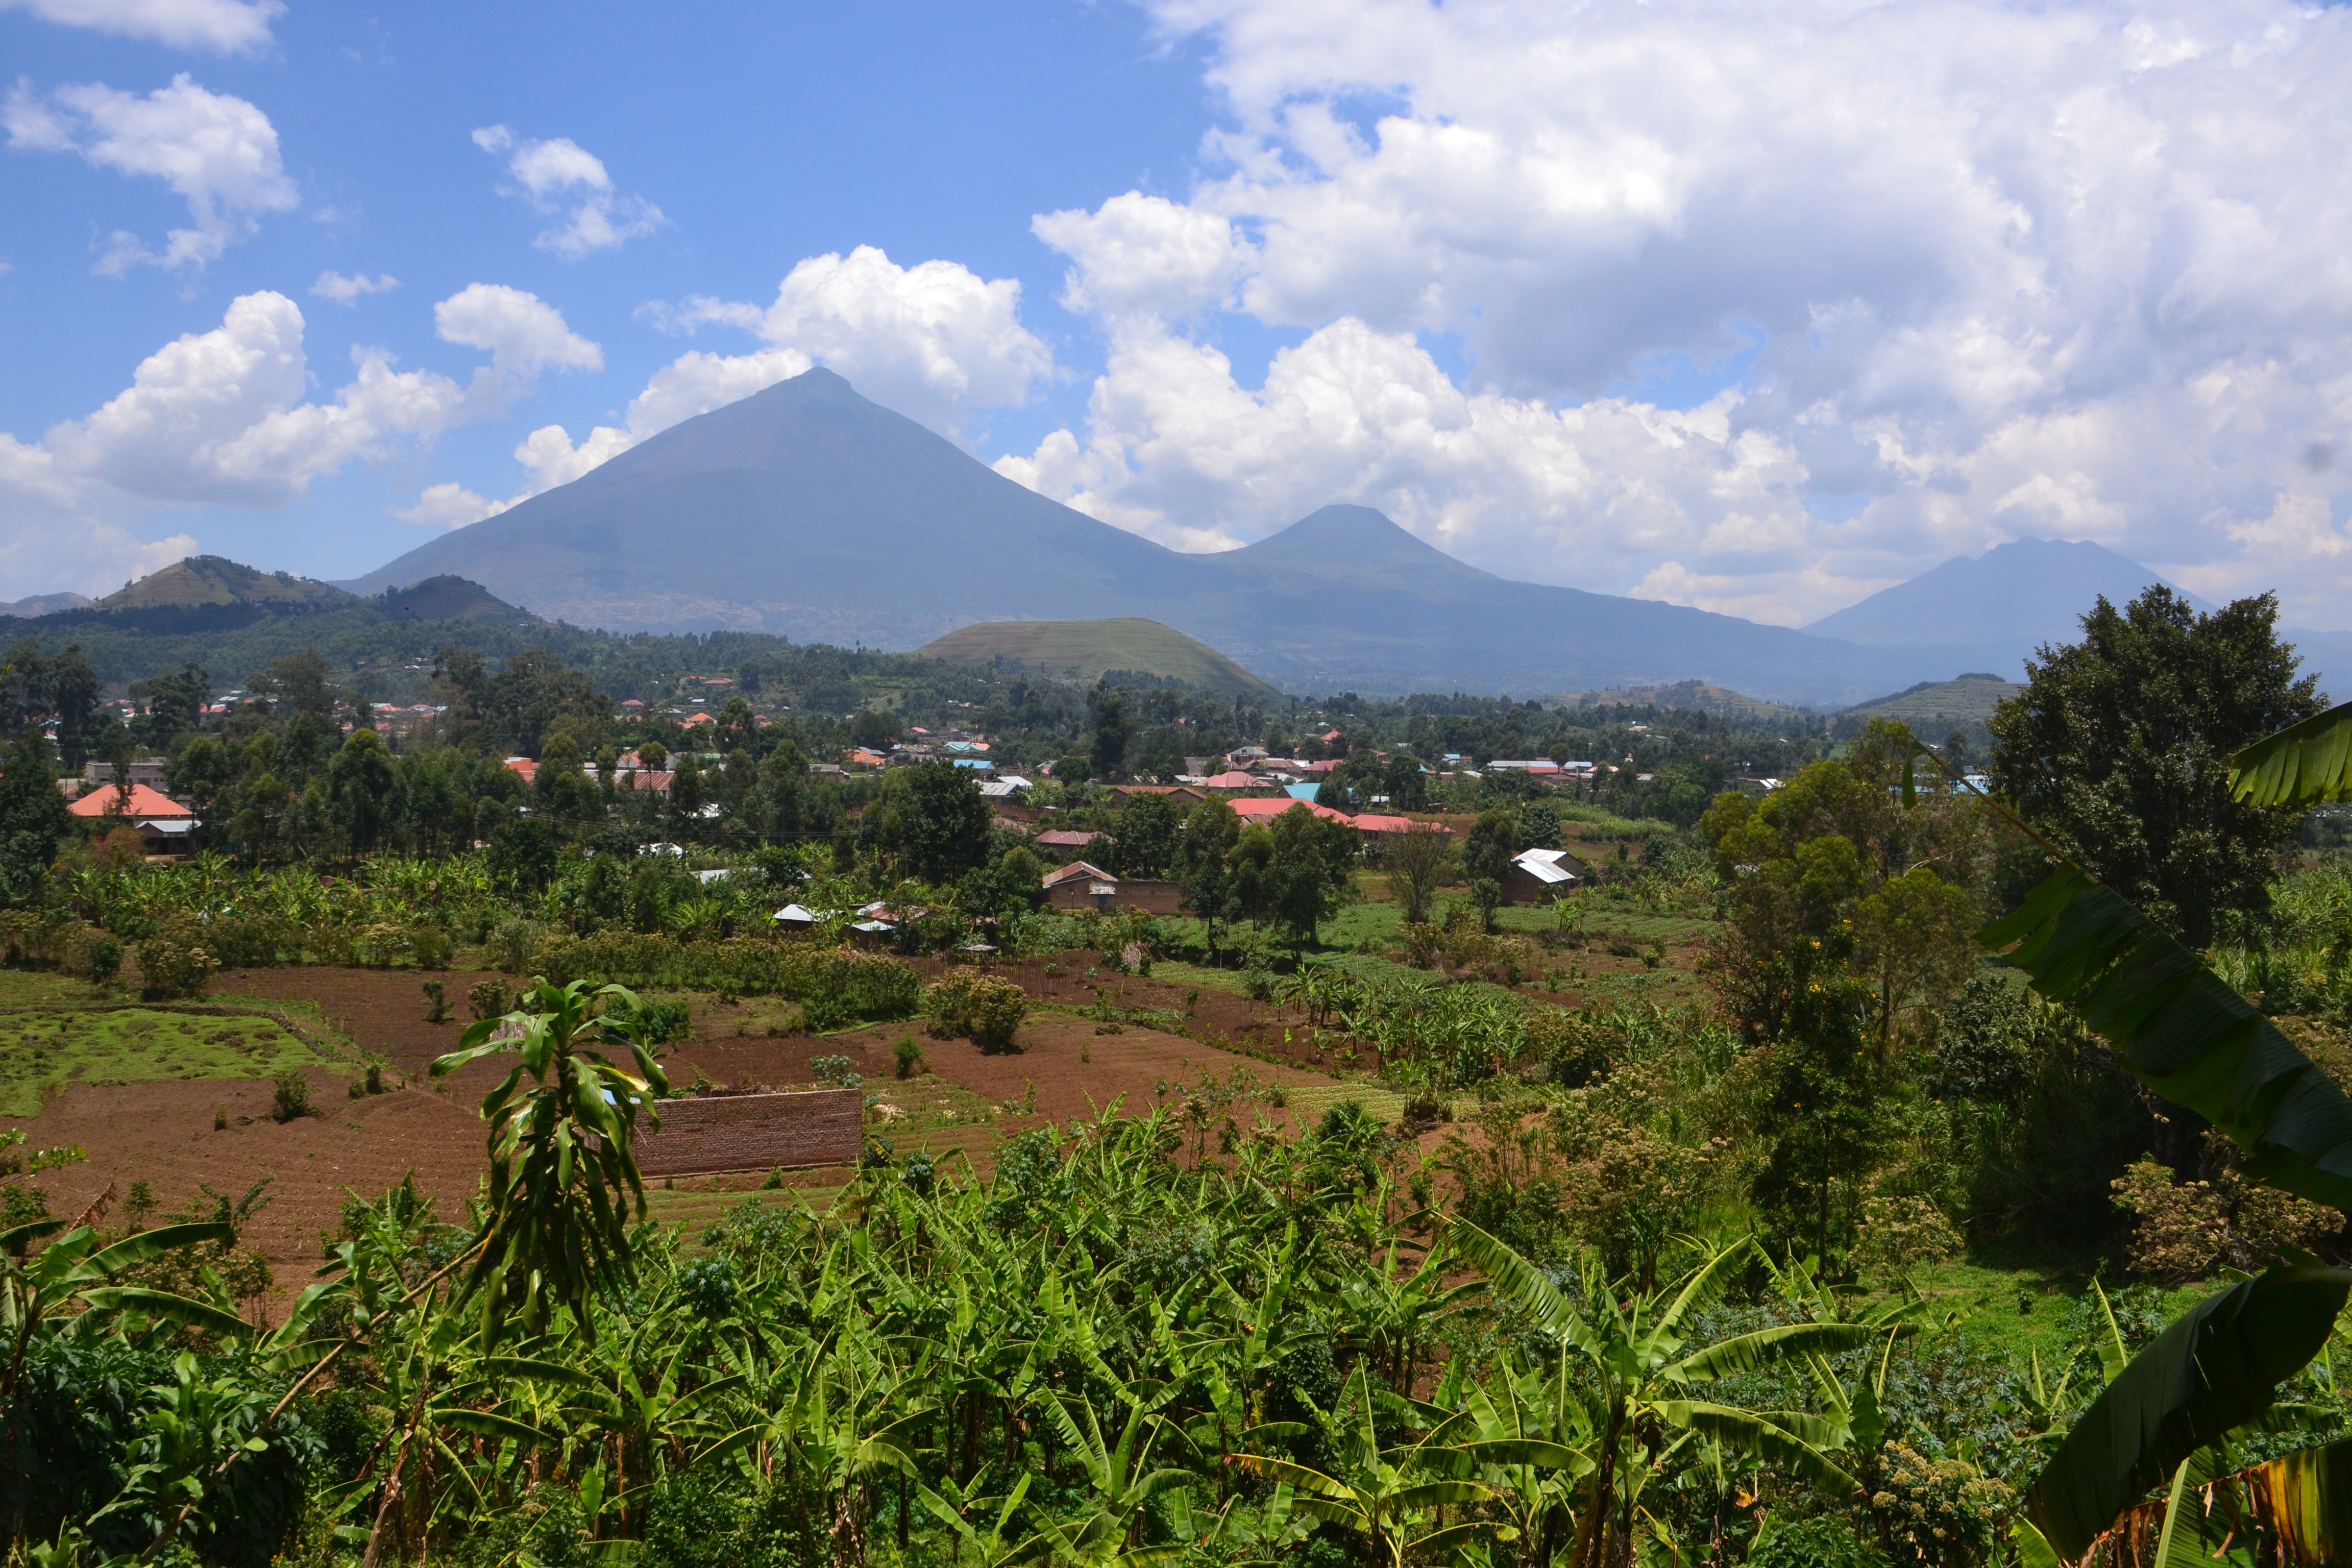 ICOB-Uganda Chapter Convention in Kisoro will be a perfect ending to the year